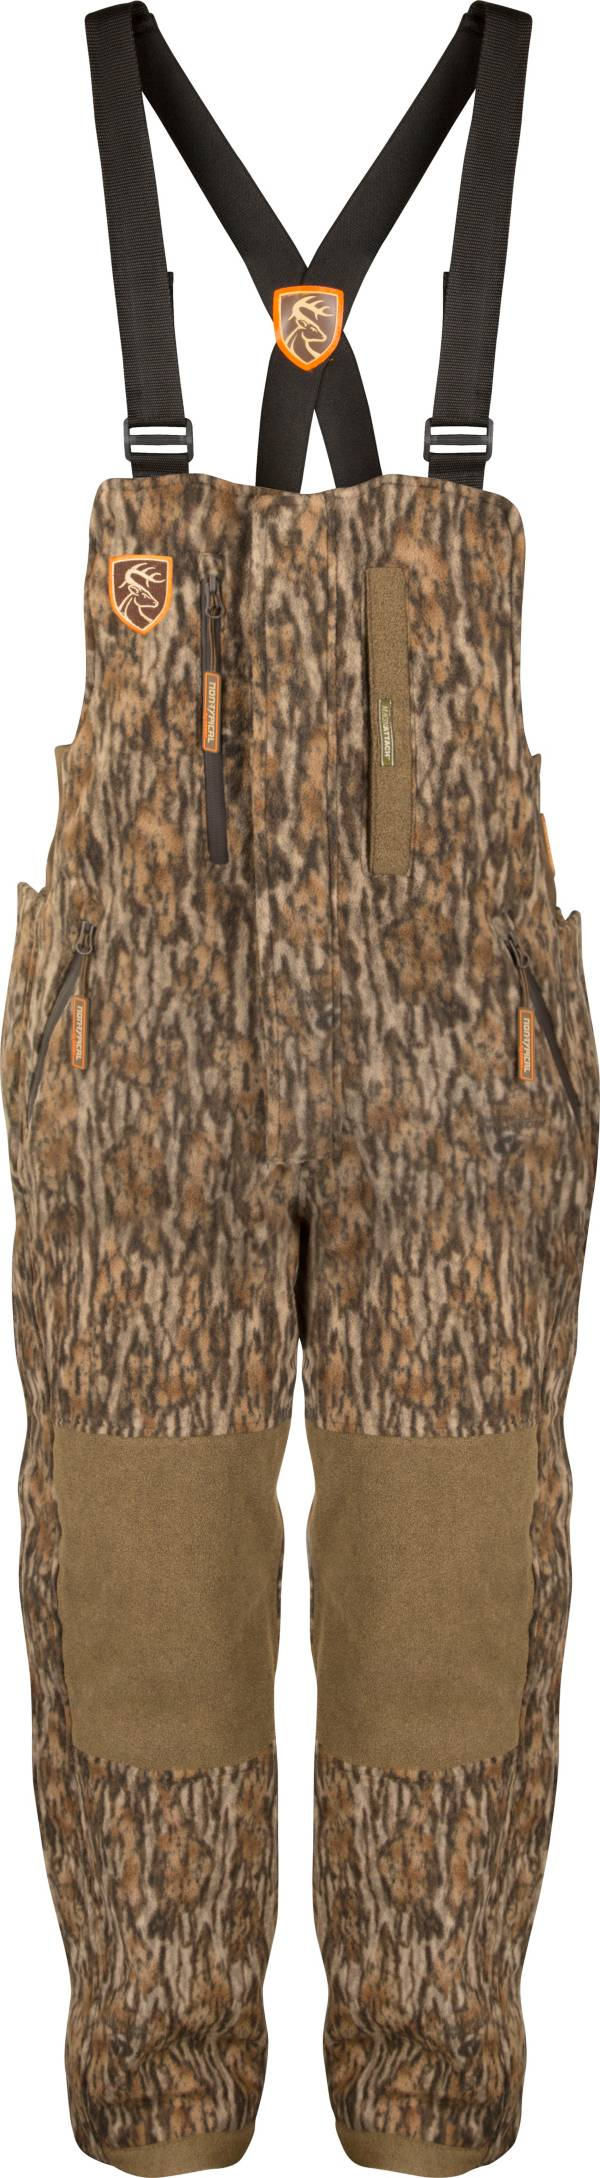 Drake Waterfowl Men's Non-Typical HydroHush Midweight Hunting Bibs with Agion Active XL product image